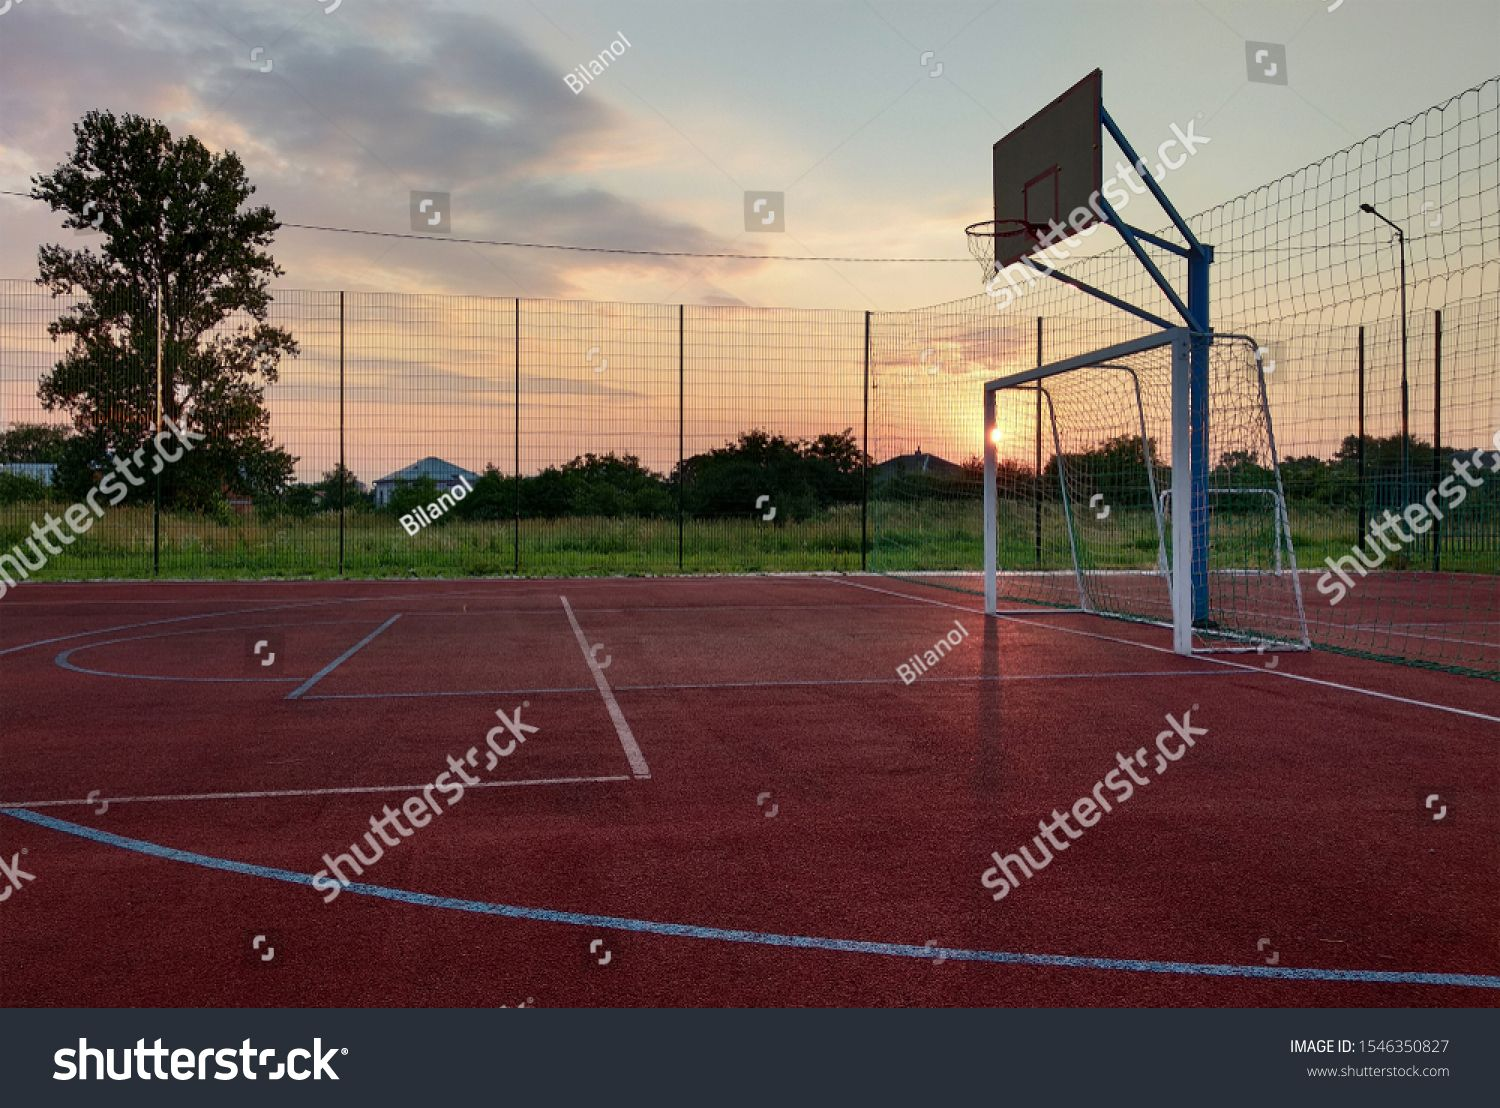 Outdoors Mini Football And Basketball Court With Ball Gate And Basket Surrounded With High Protective Fence Ad Football And Basketball Mini Footballs Outdoor